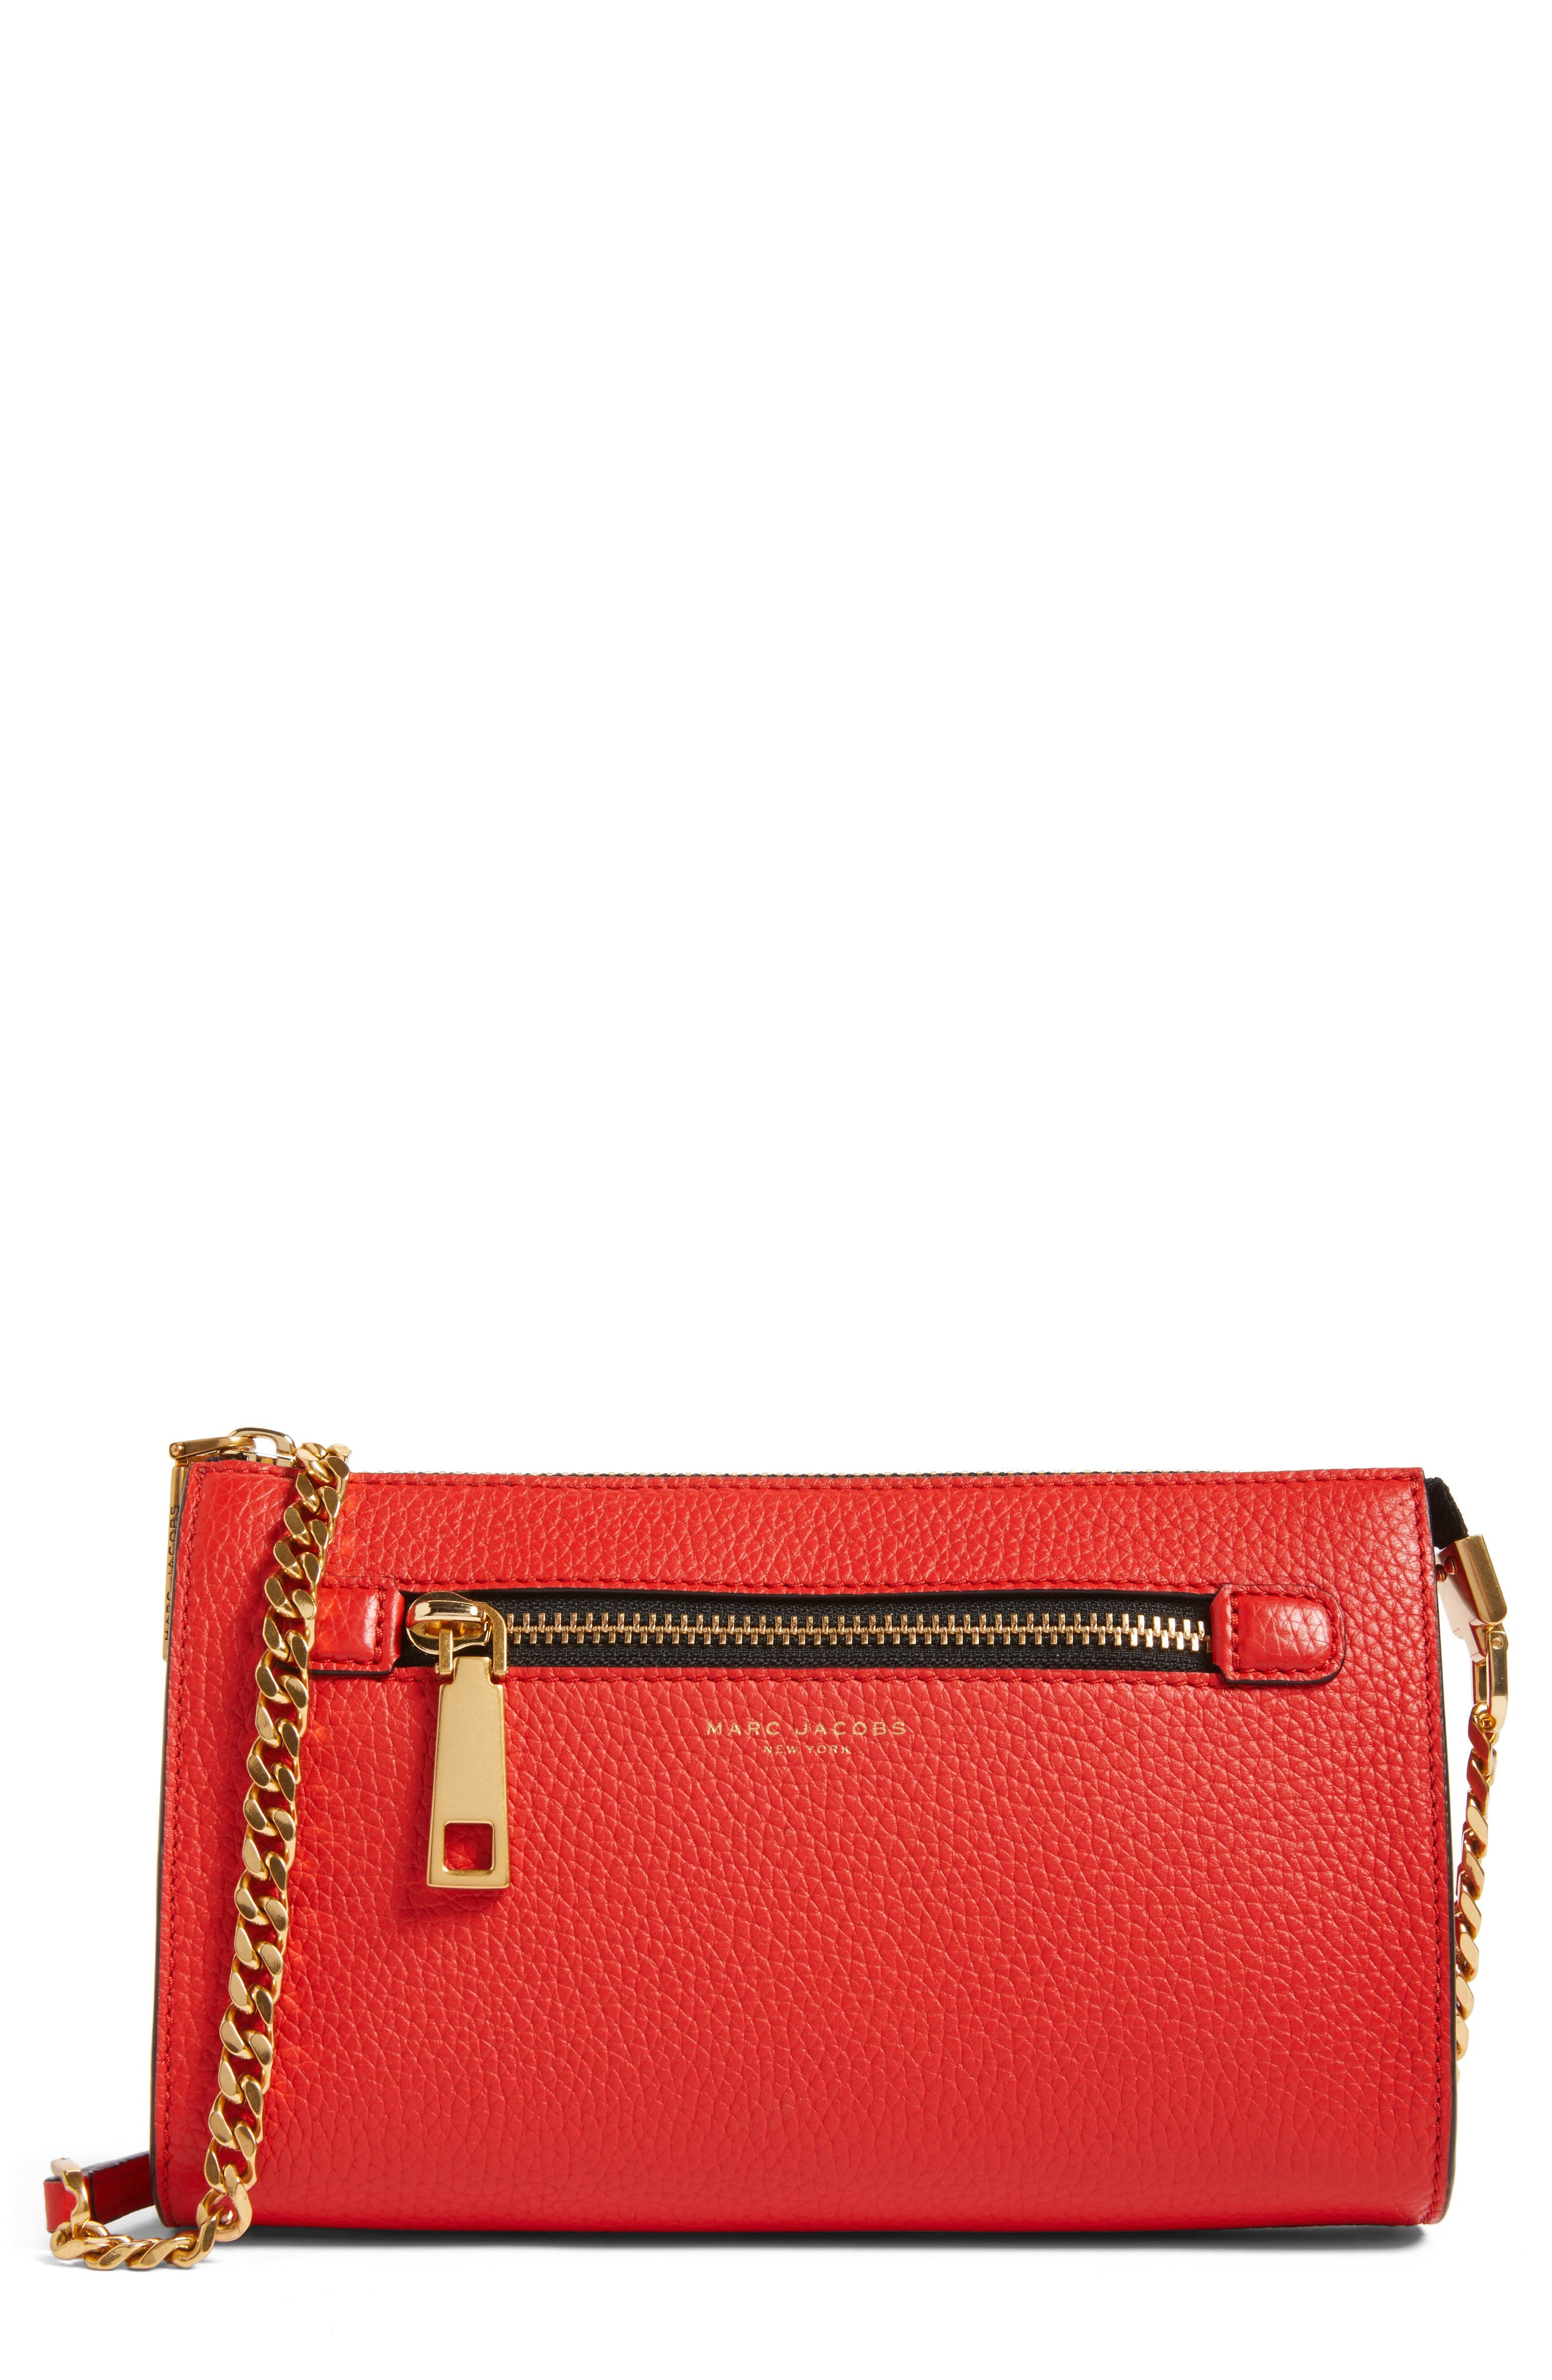 Alternate Image 1 Selected - MARC JACOBS Small Gotham Leather Crossbody Wallet (Nordstrom Exclusive)